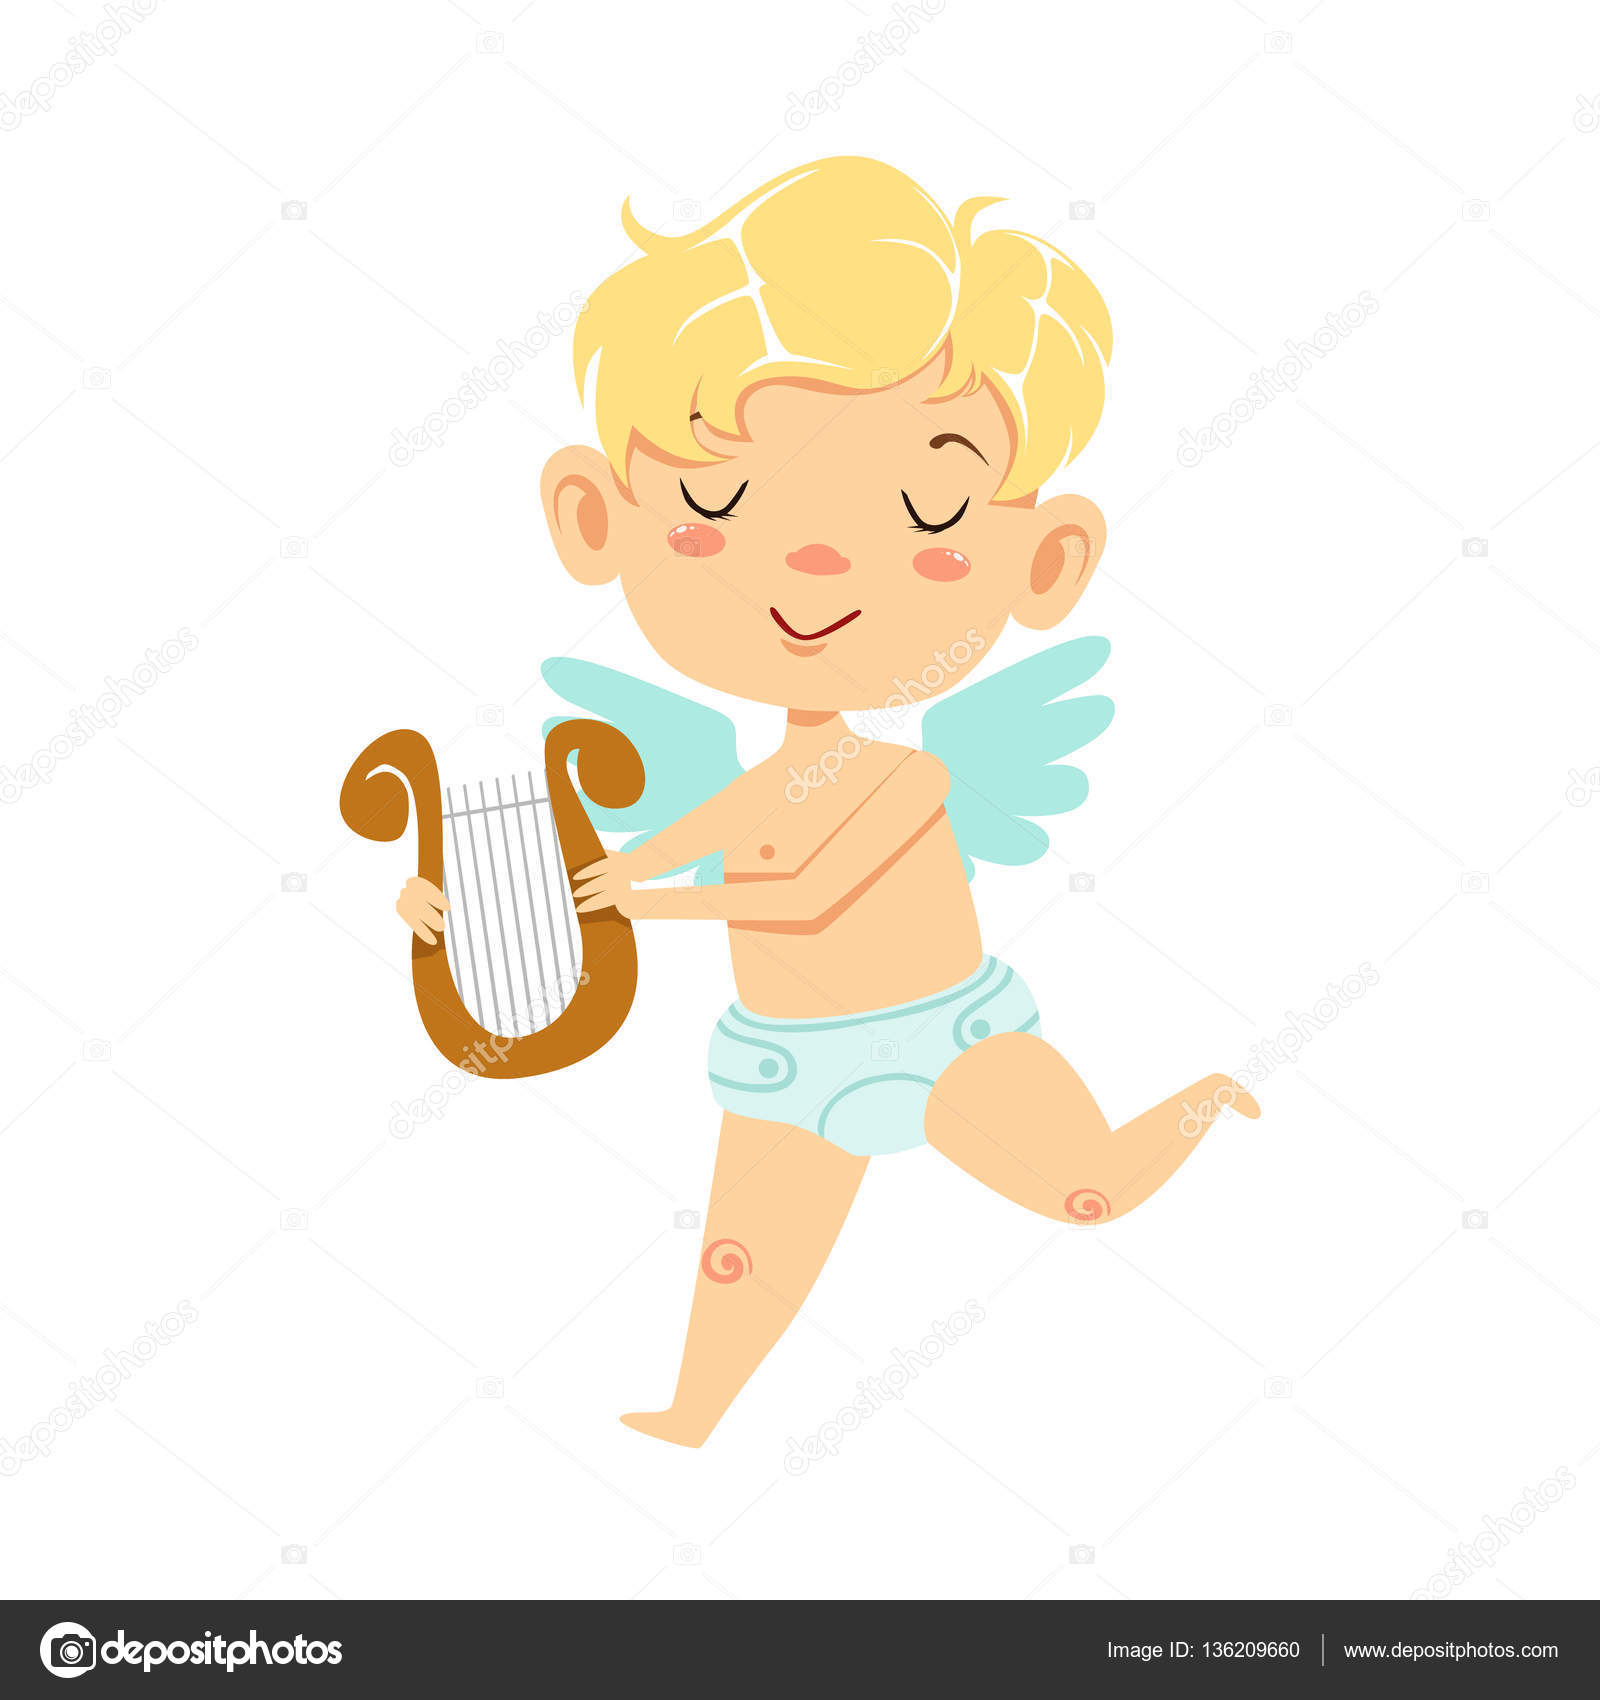 boy baby cupid with lira winged toddler in diaper adorable love symbol cartoon character - Toddler Cartoon Characters